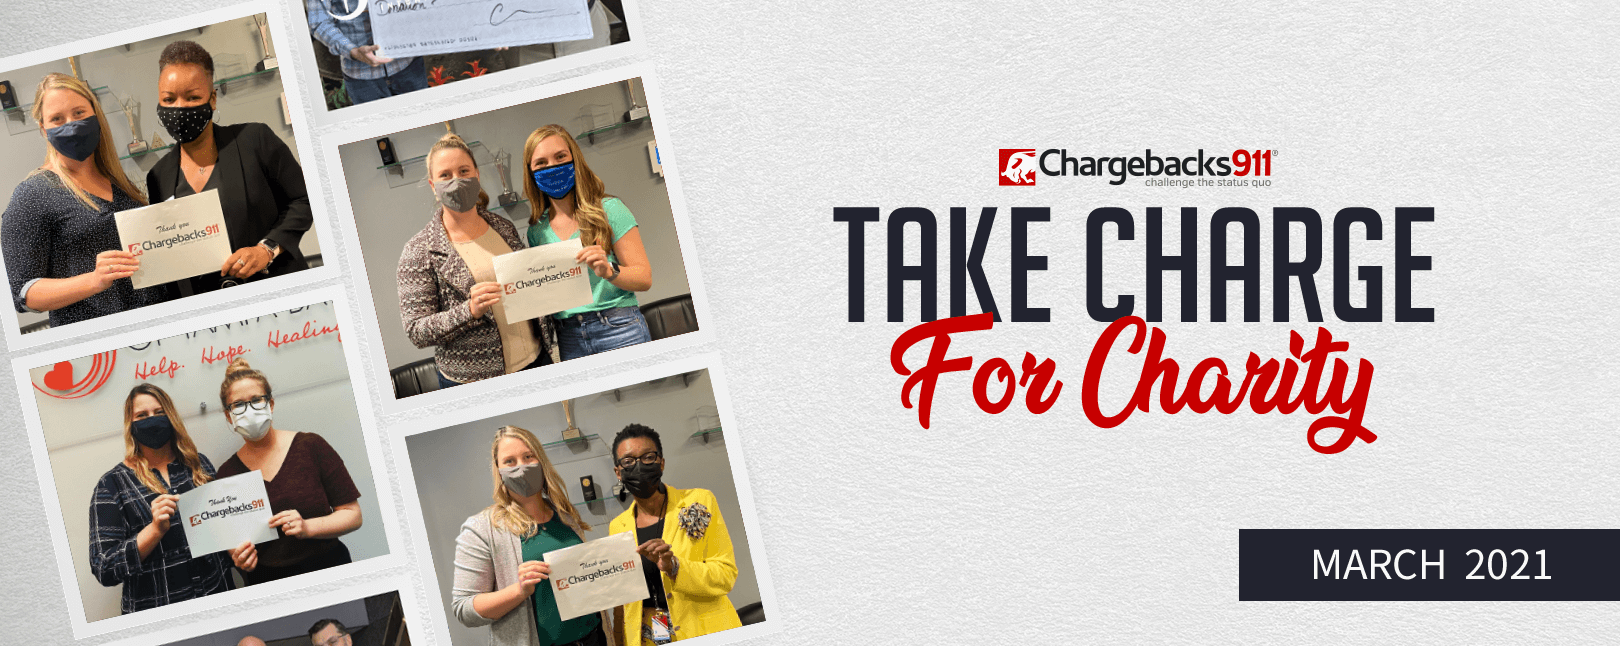 Take Charge for Charity – March 2021